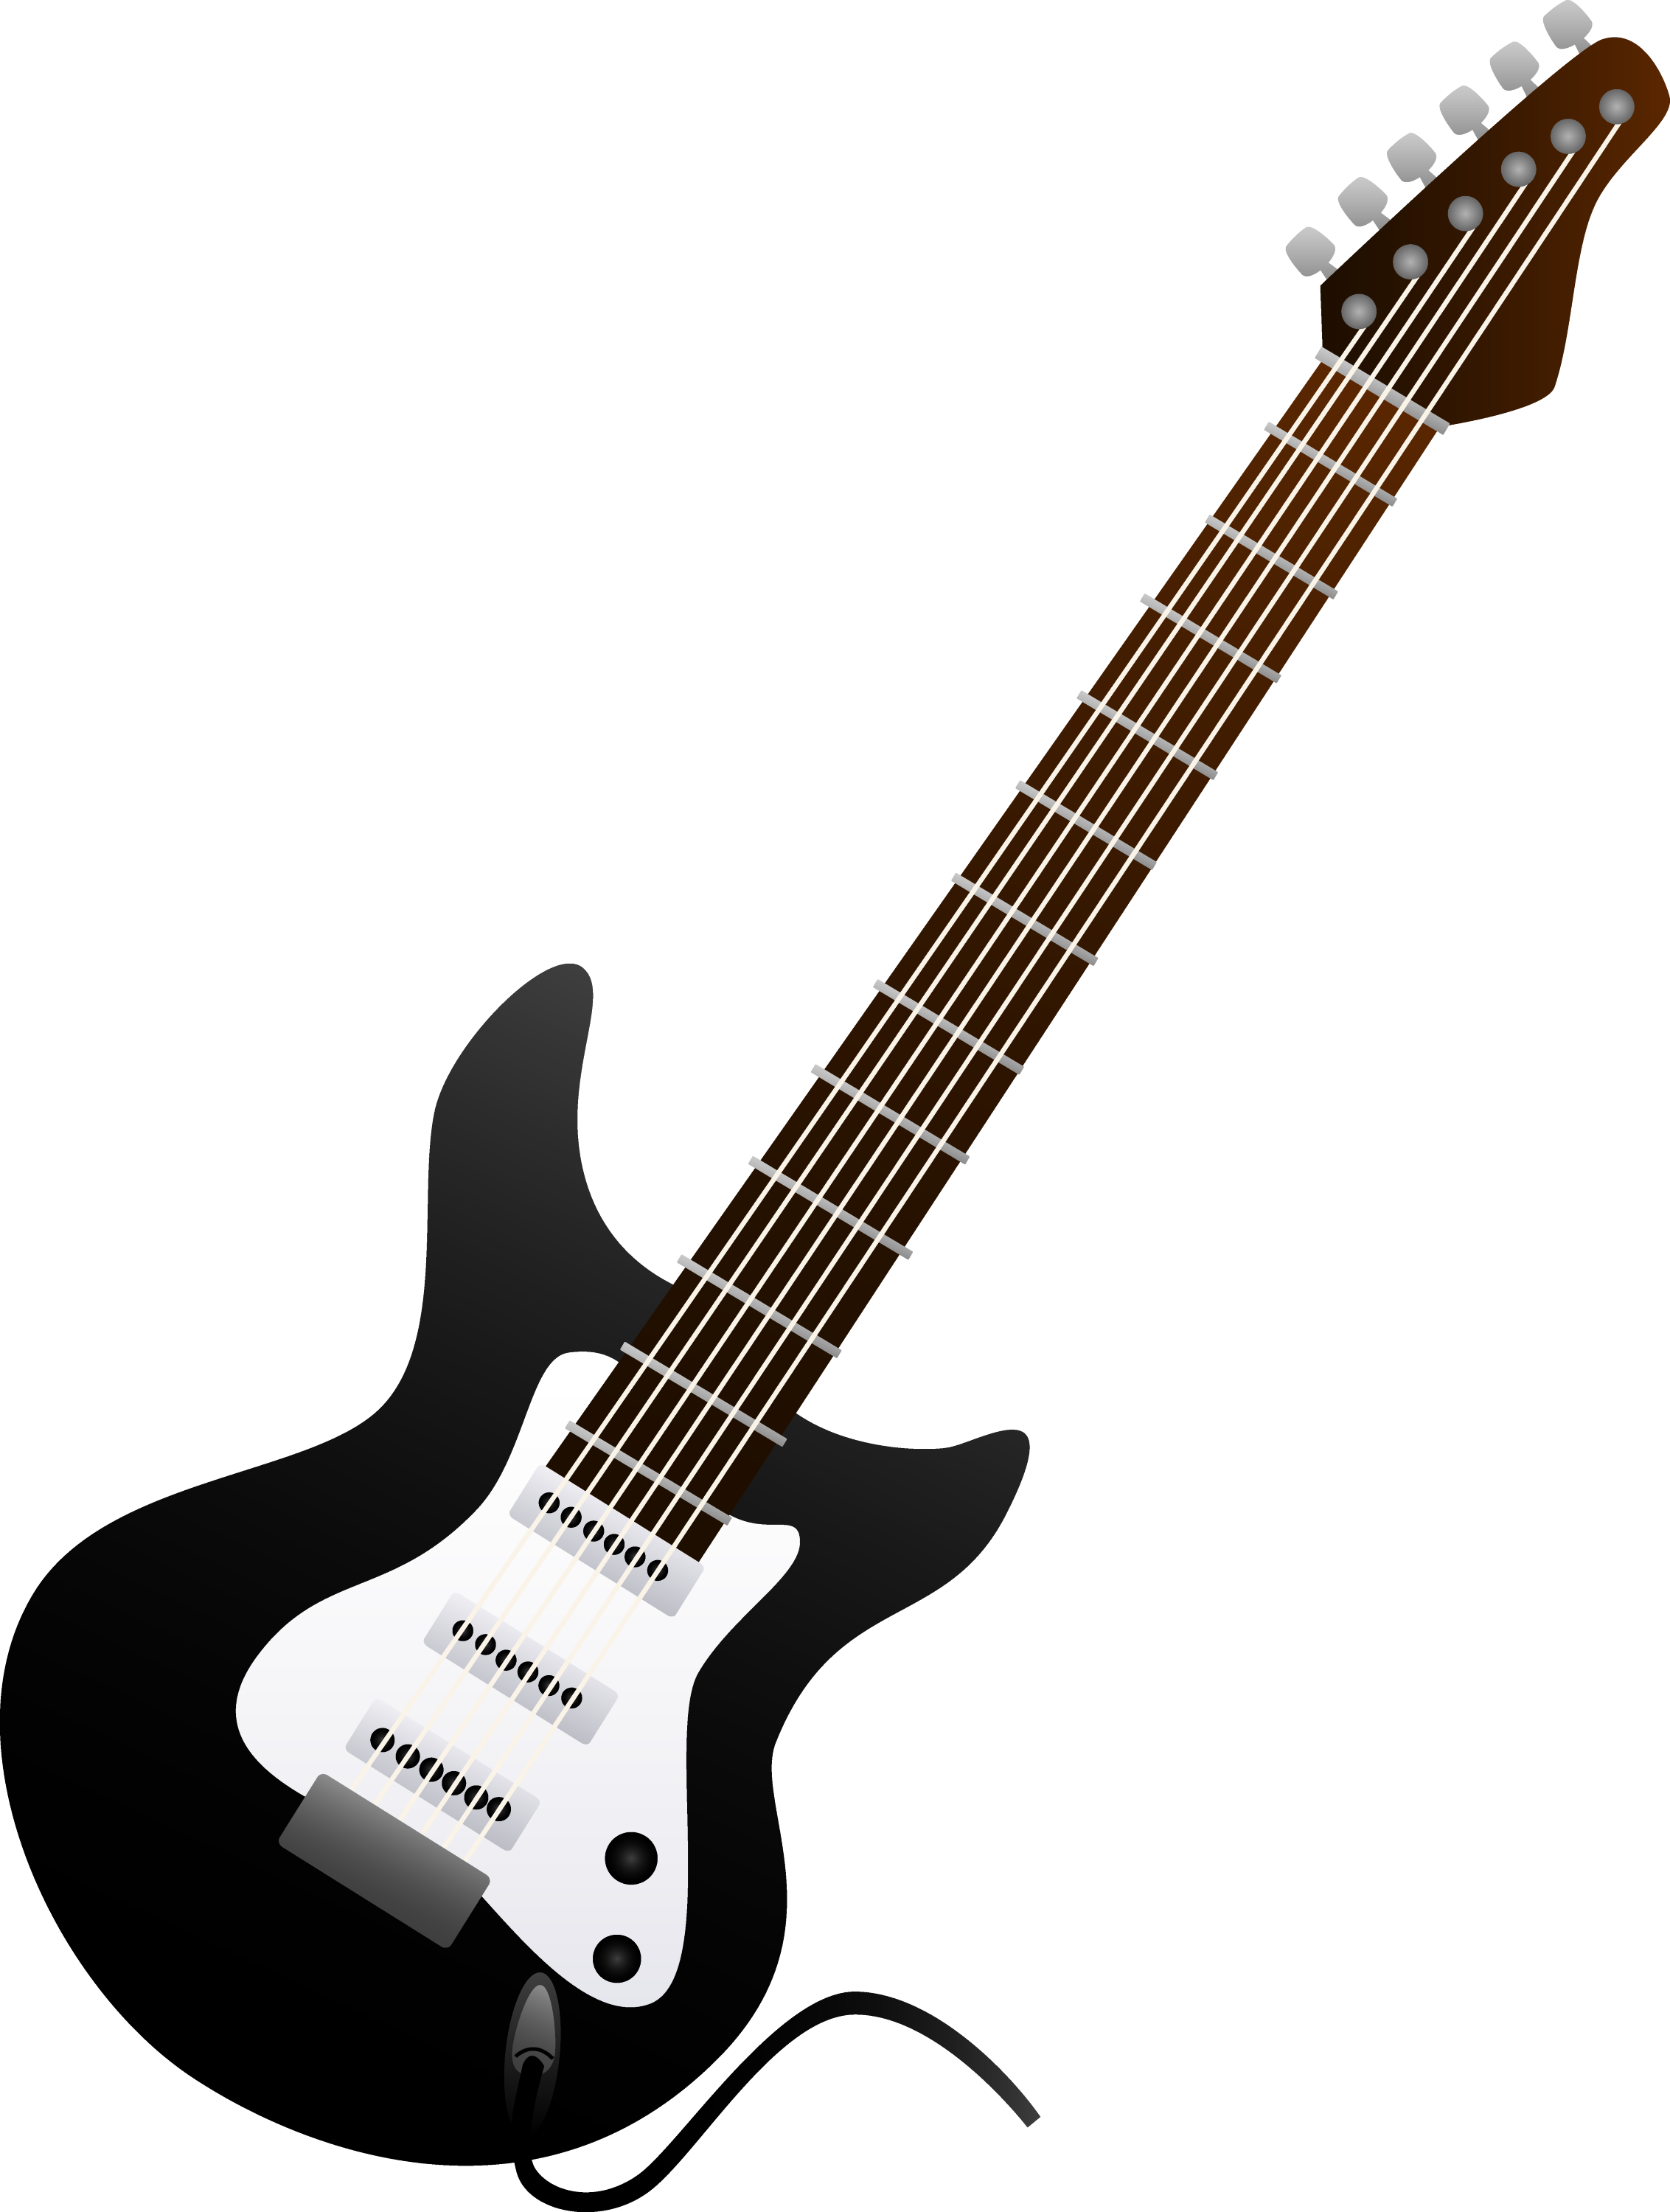 black electric guitar design free clip art. Black Bedroom Furniture Sets. Home Design Ideas